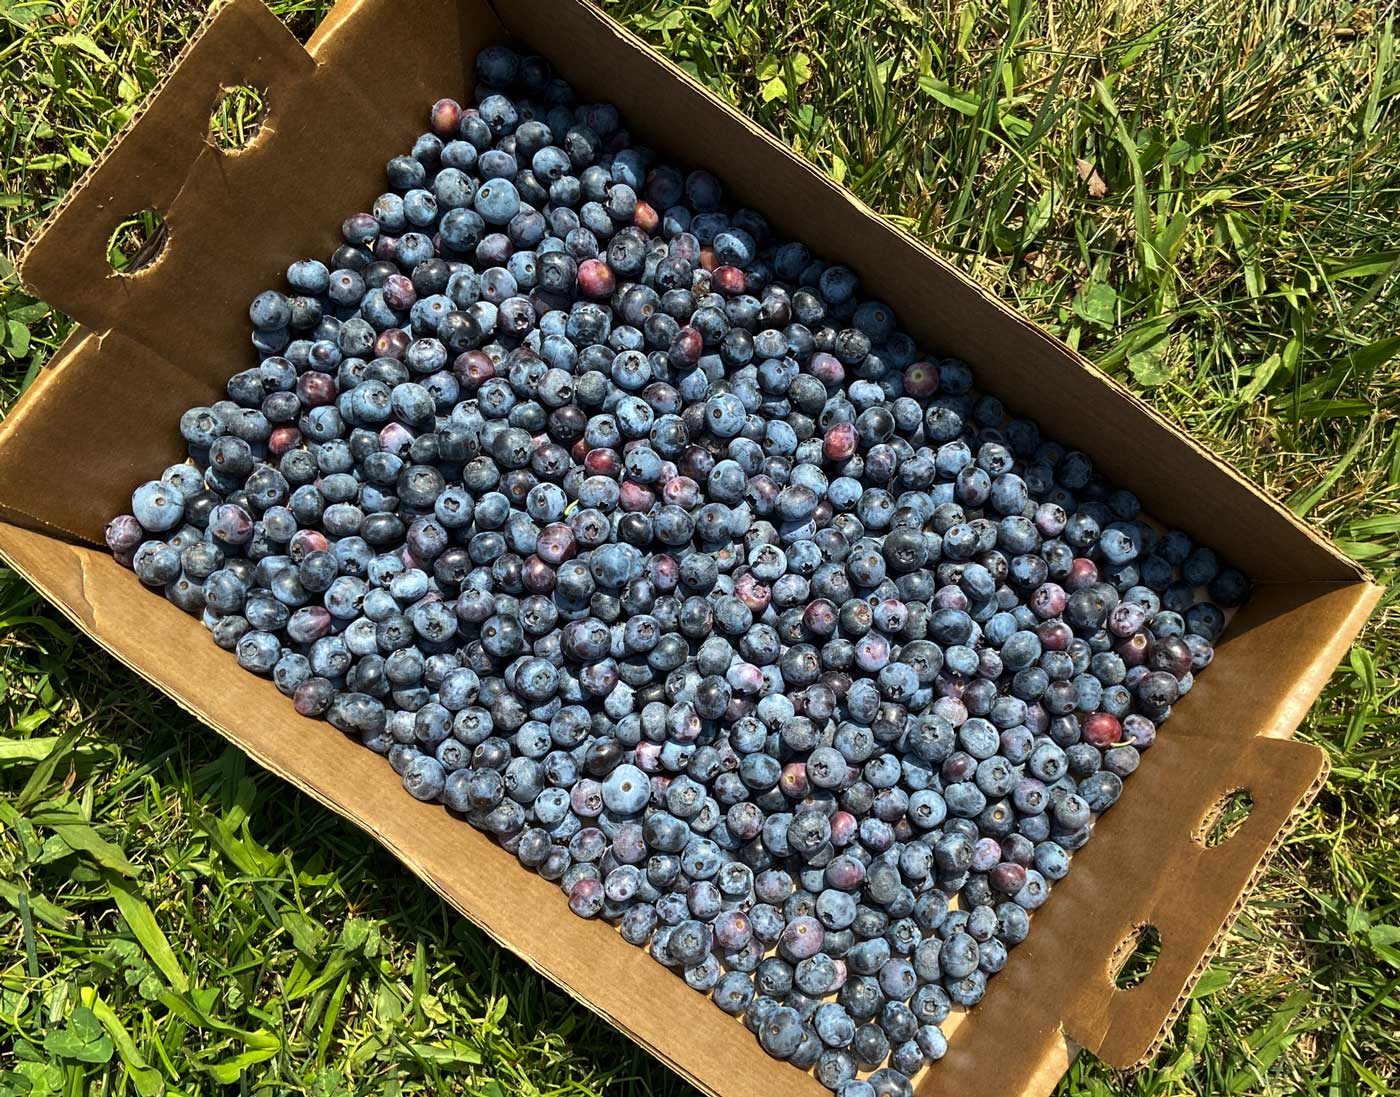 A cardboard box filled with freshly picked blueberries.